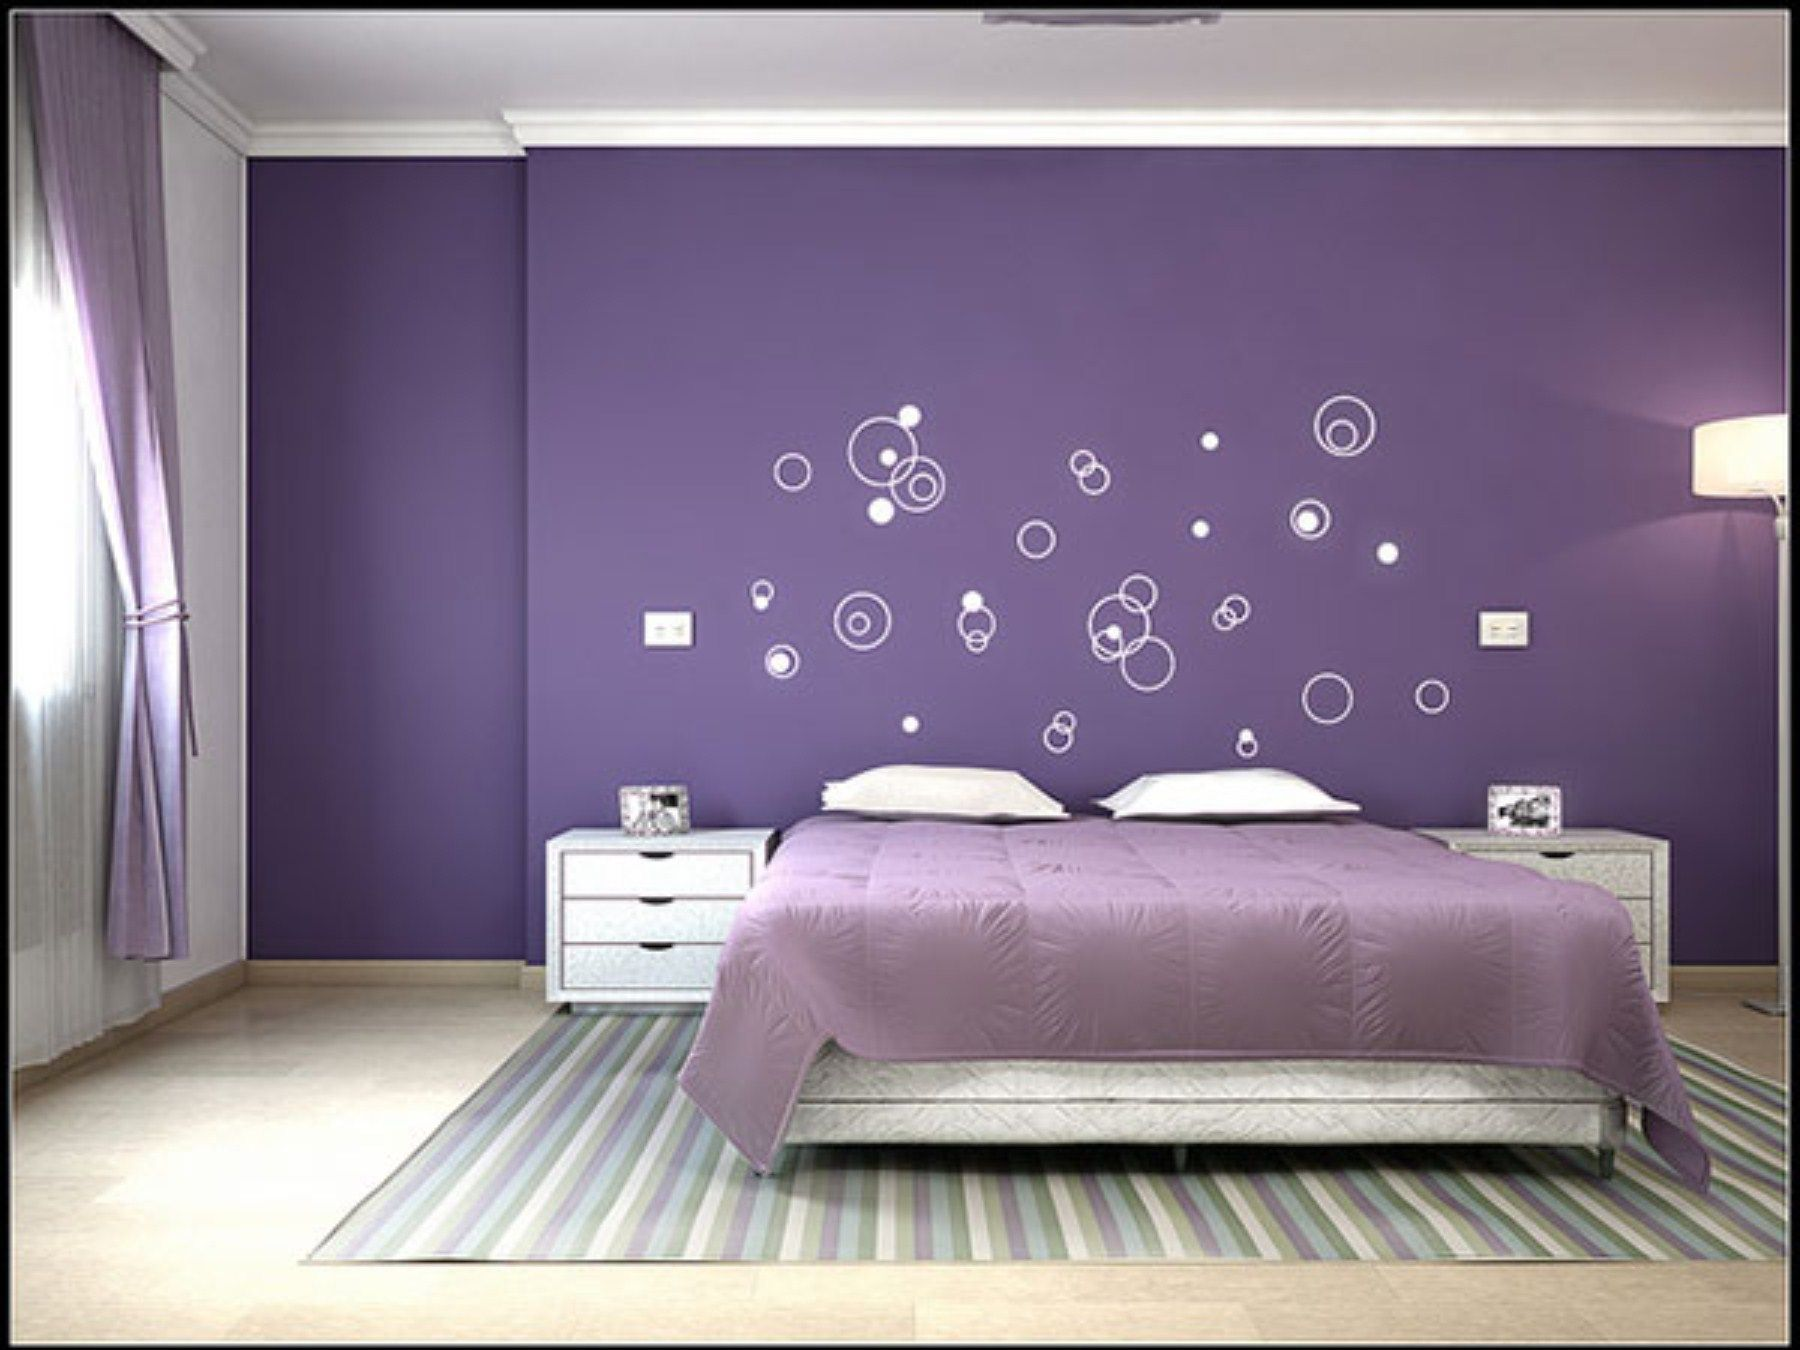 Bedroom, Purple Bedroom Color Schemes With Unique Wall Art And Colorful  Square Carpet: Purple Bedroom Ideas For Teenage Girls Part 90